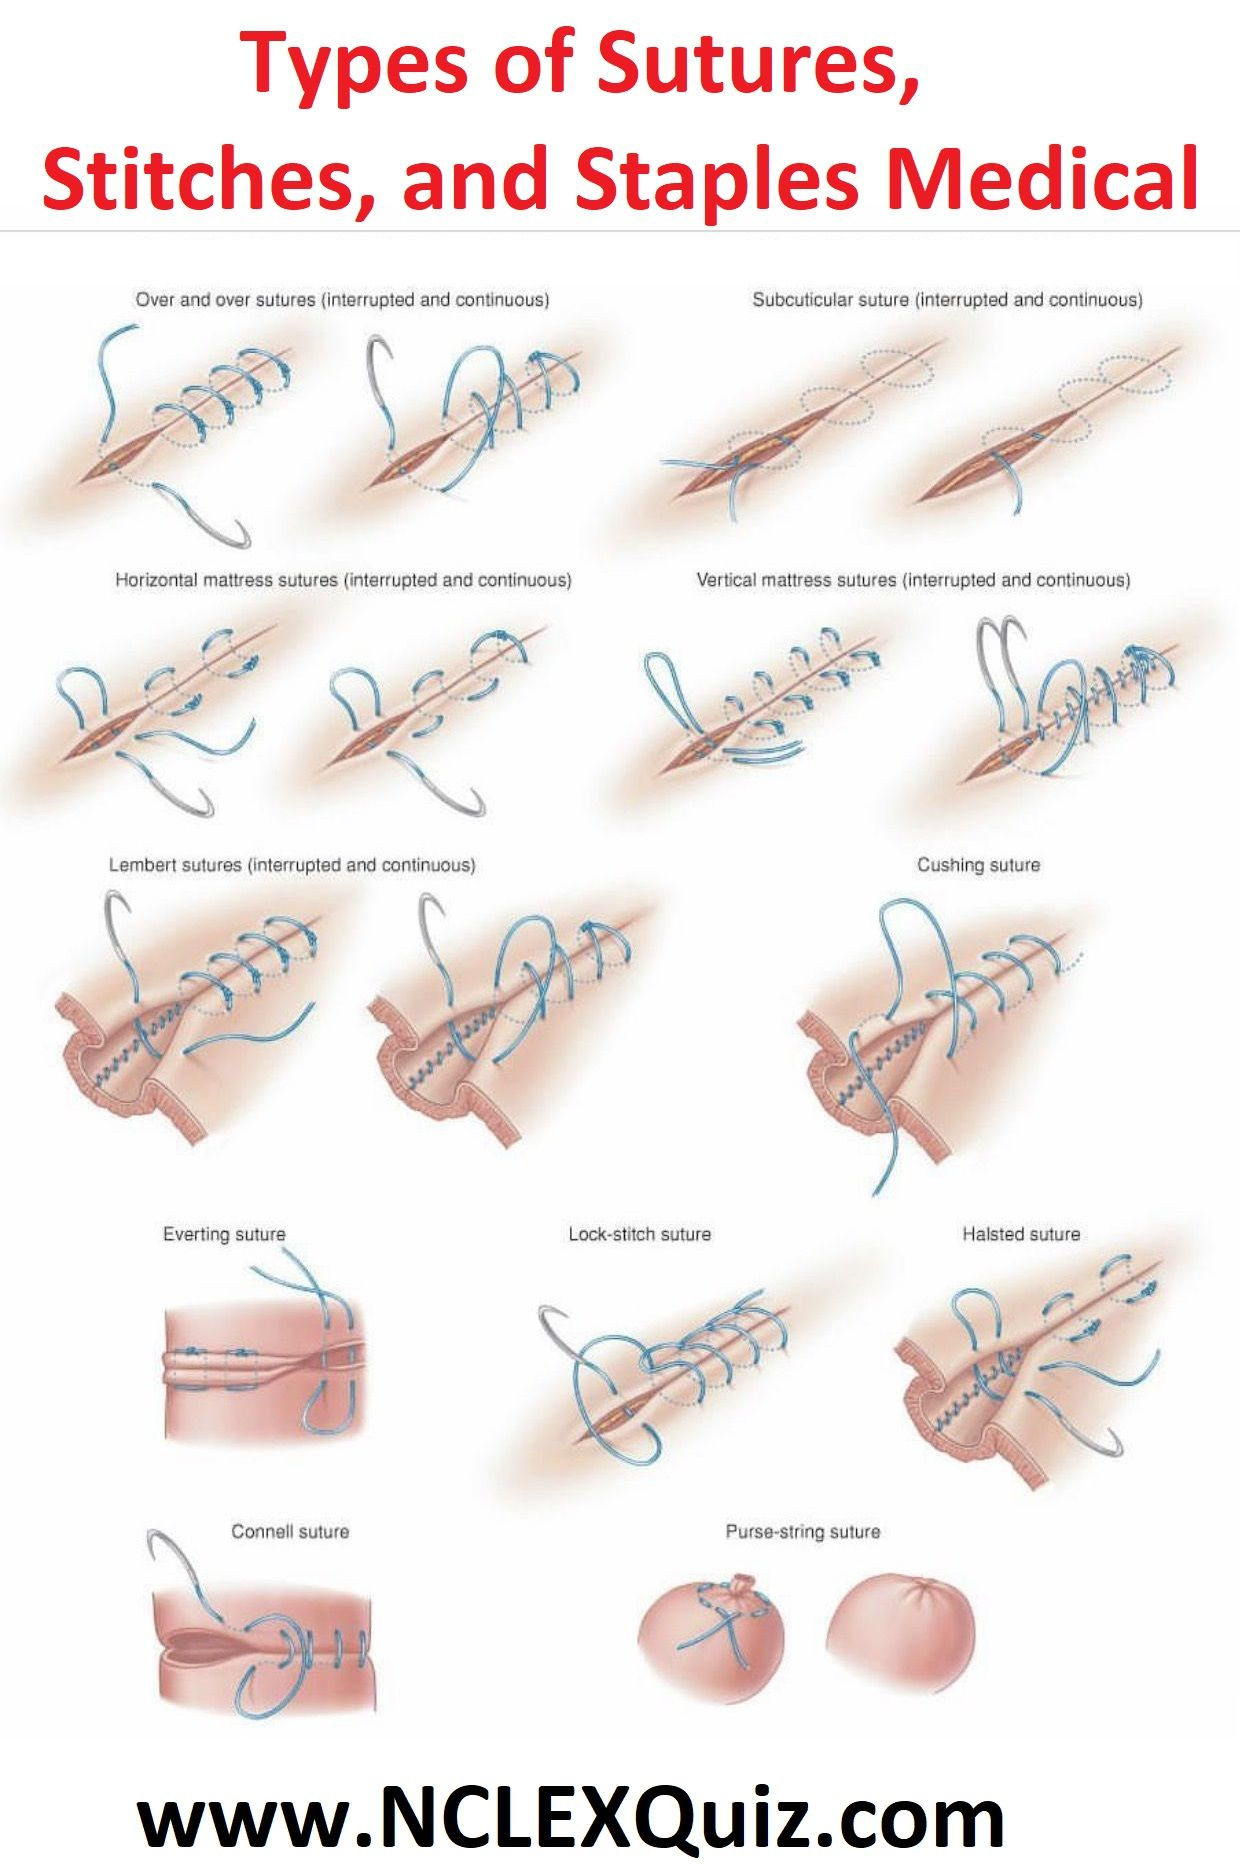 Types Of Sutures Stitches And Staples Medical 1 Surgical Suture Suture Types Wound Care